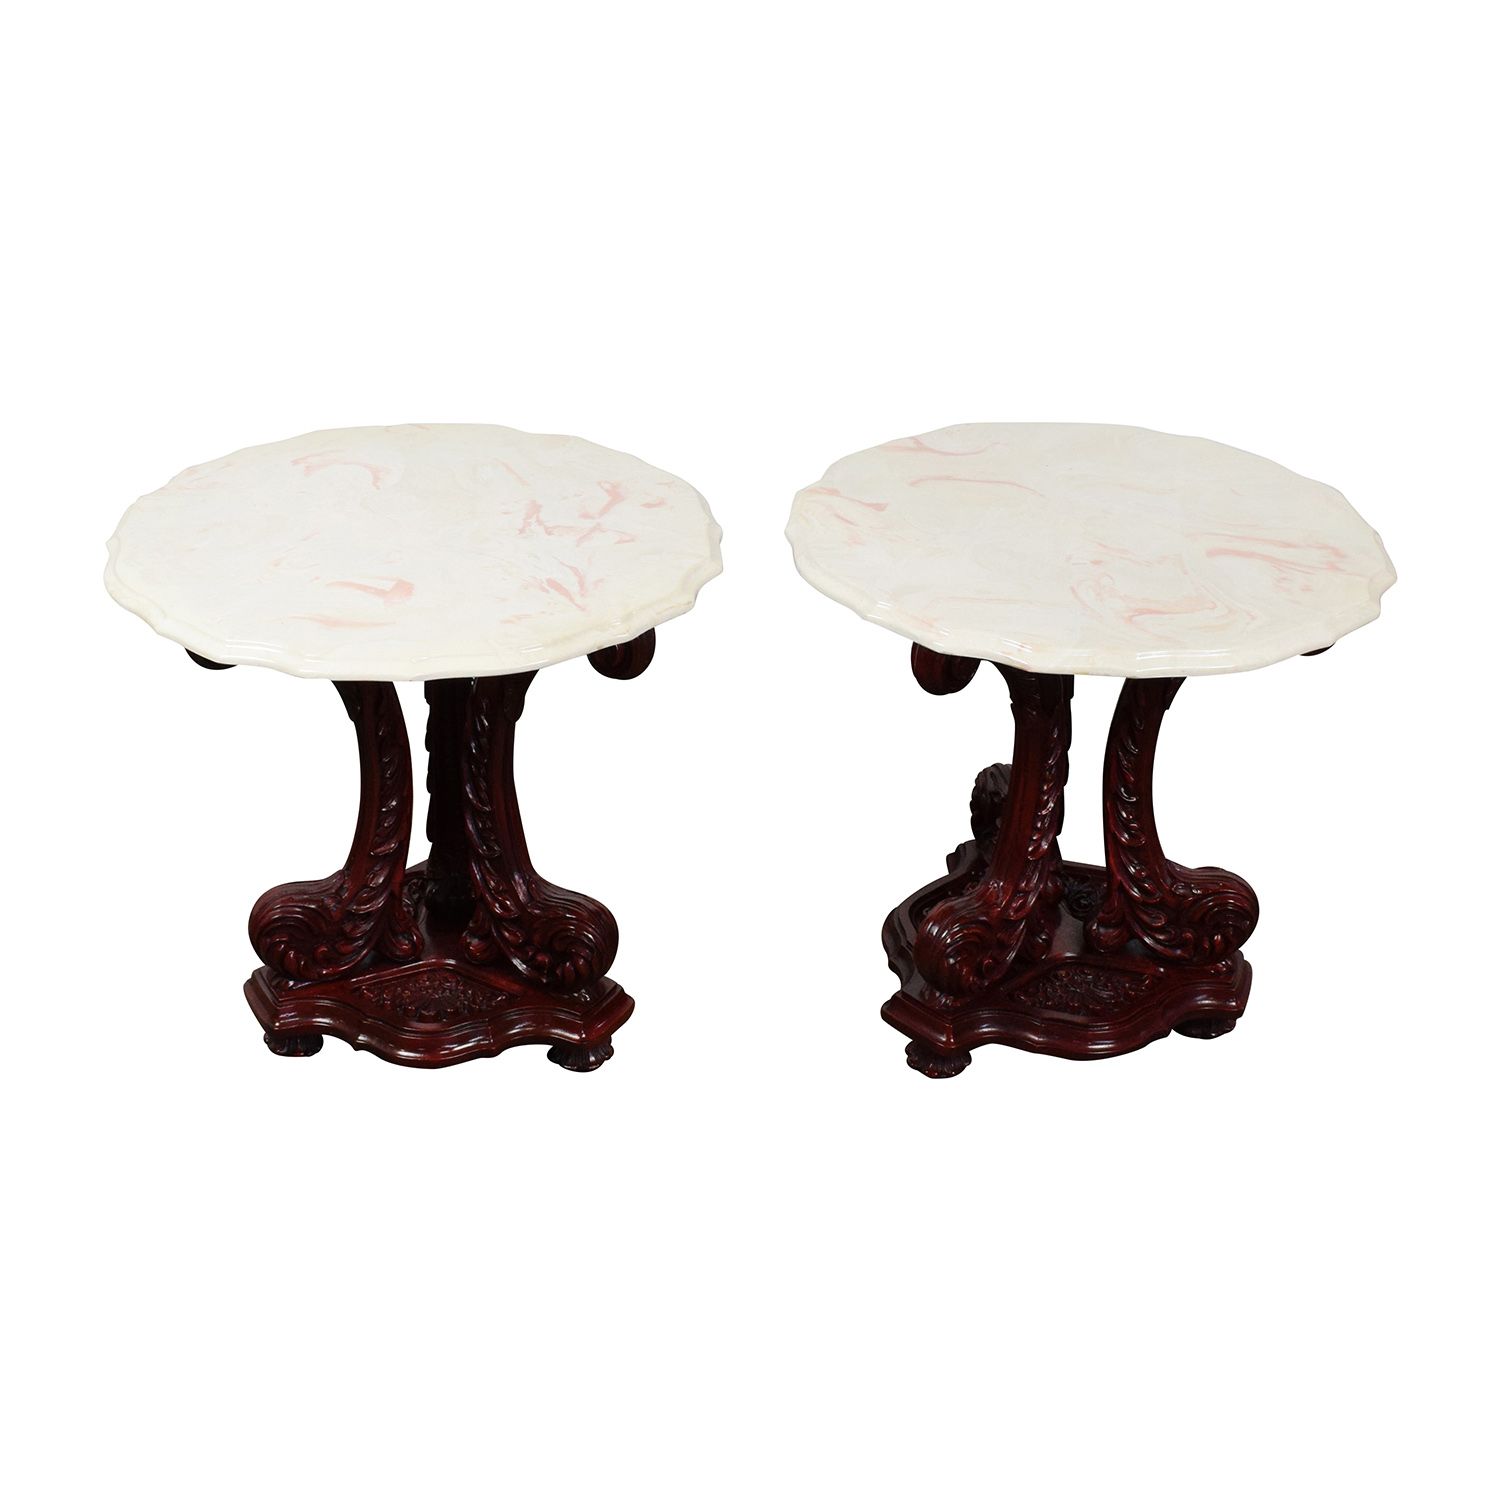 Marble Top End Tables with Burgundy Wood Base nj